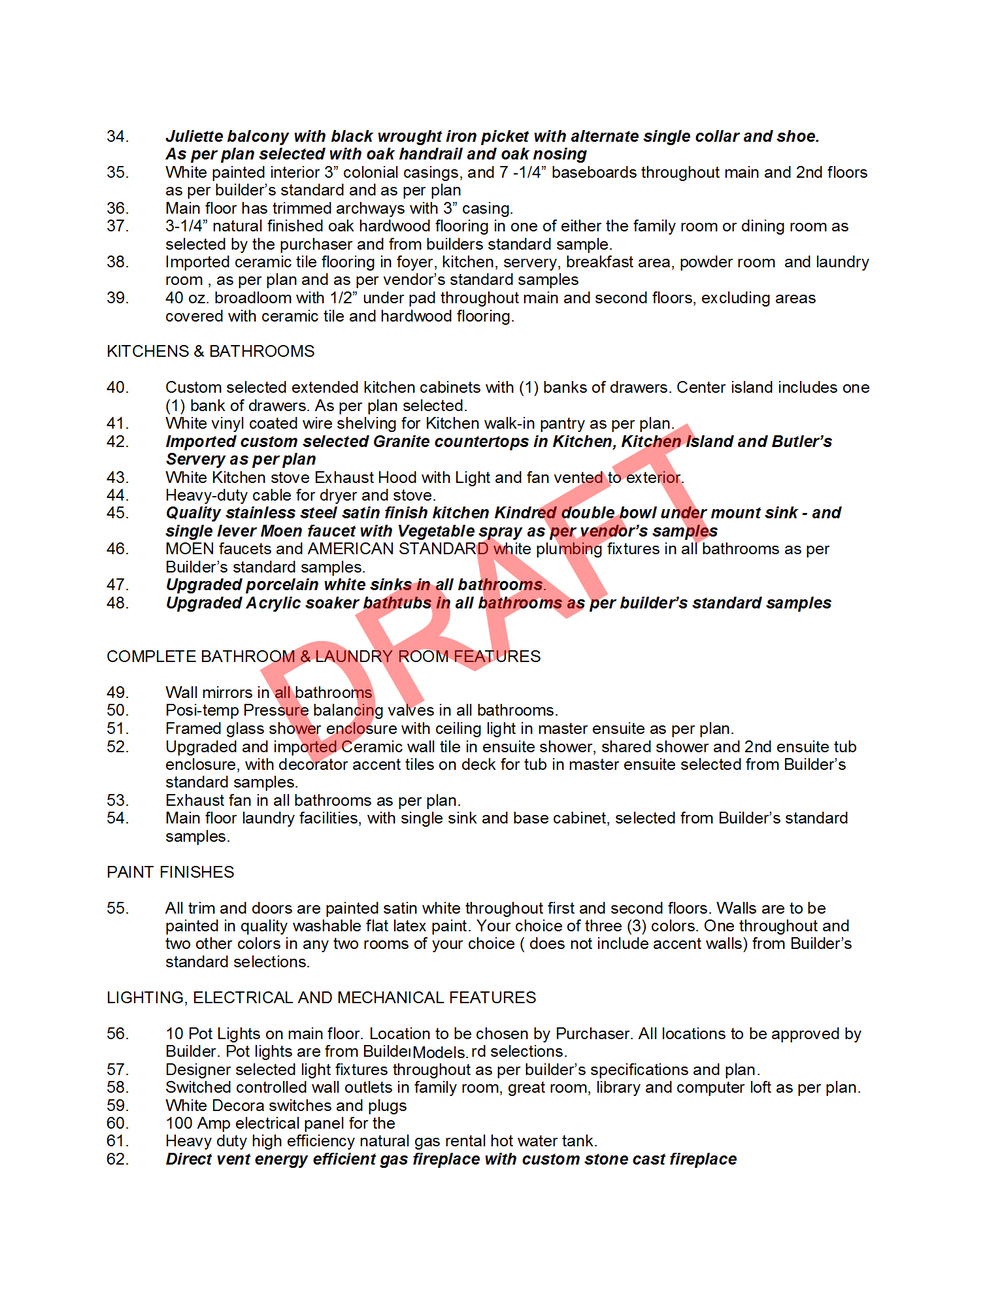 SANDHURST Features and Finishes - Page 2 copy.jpg